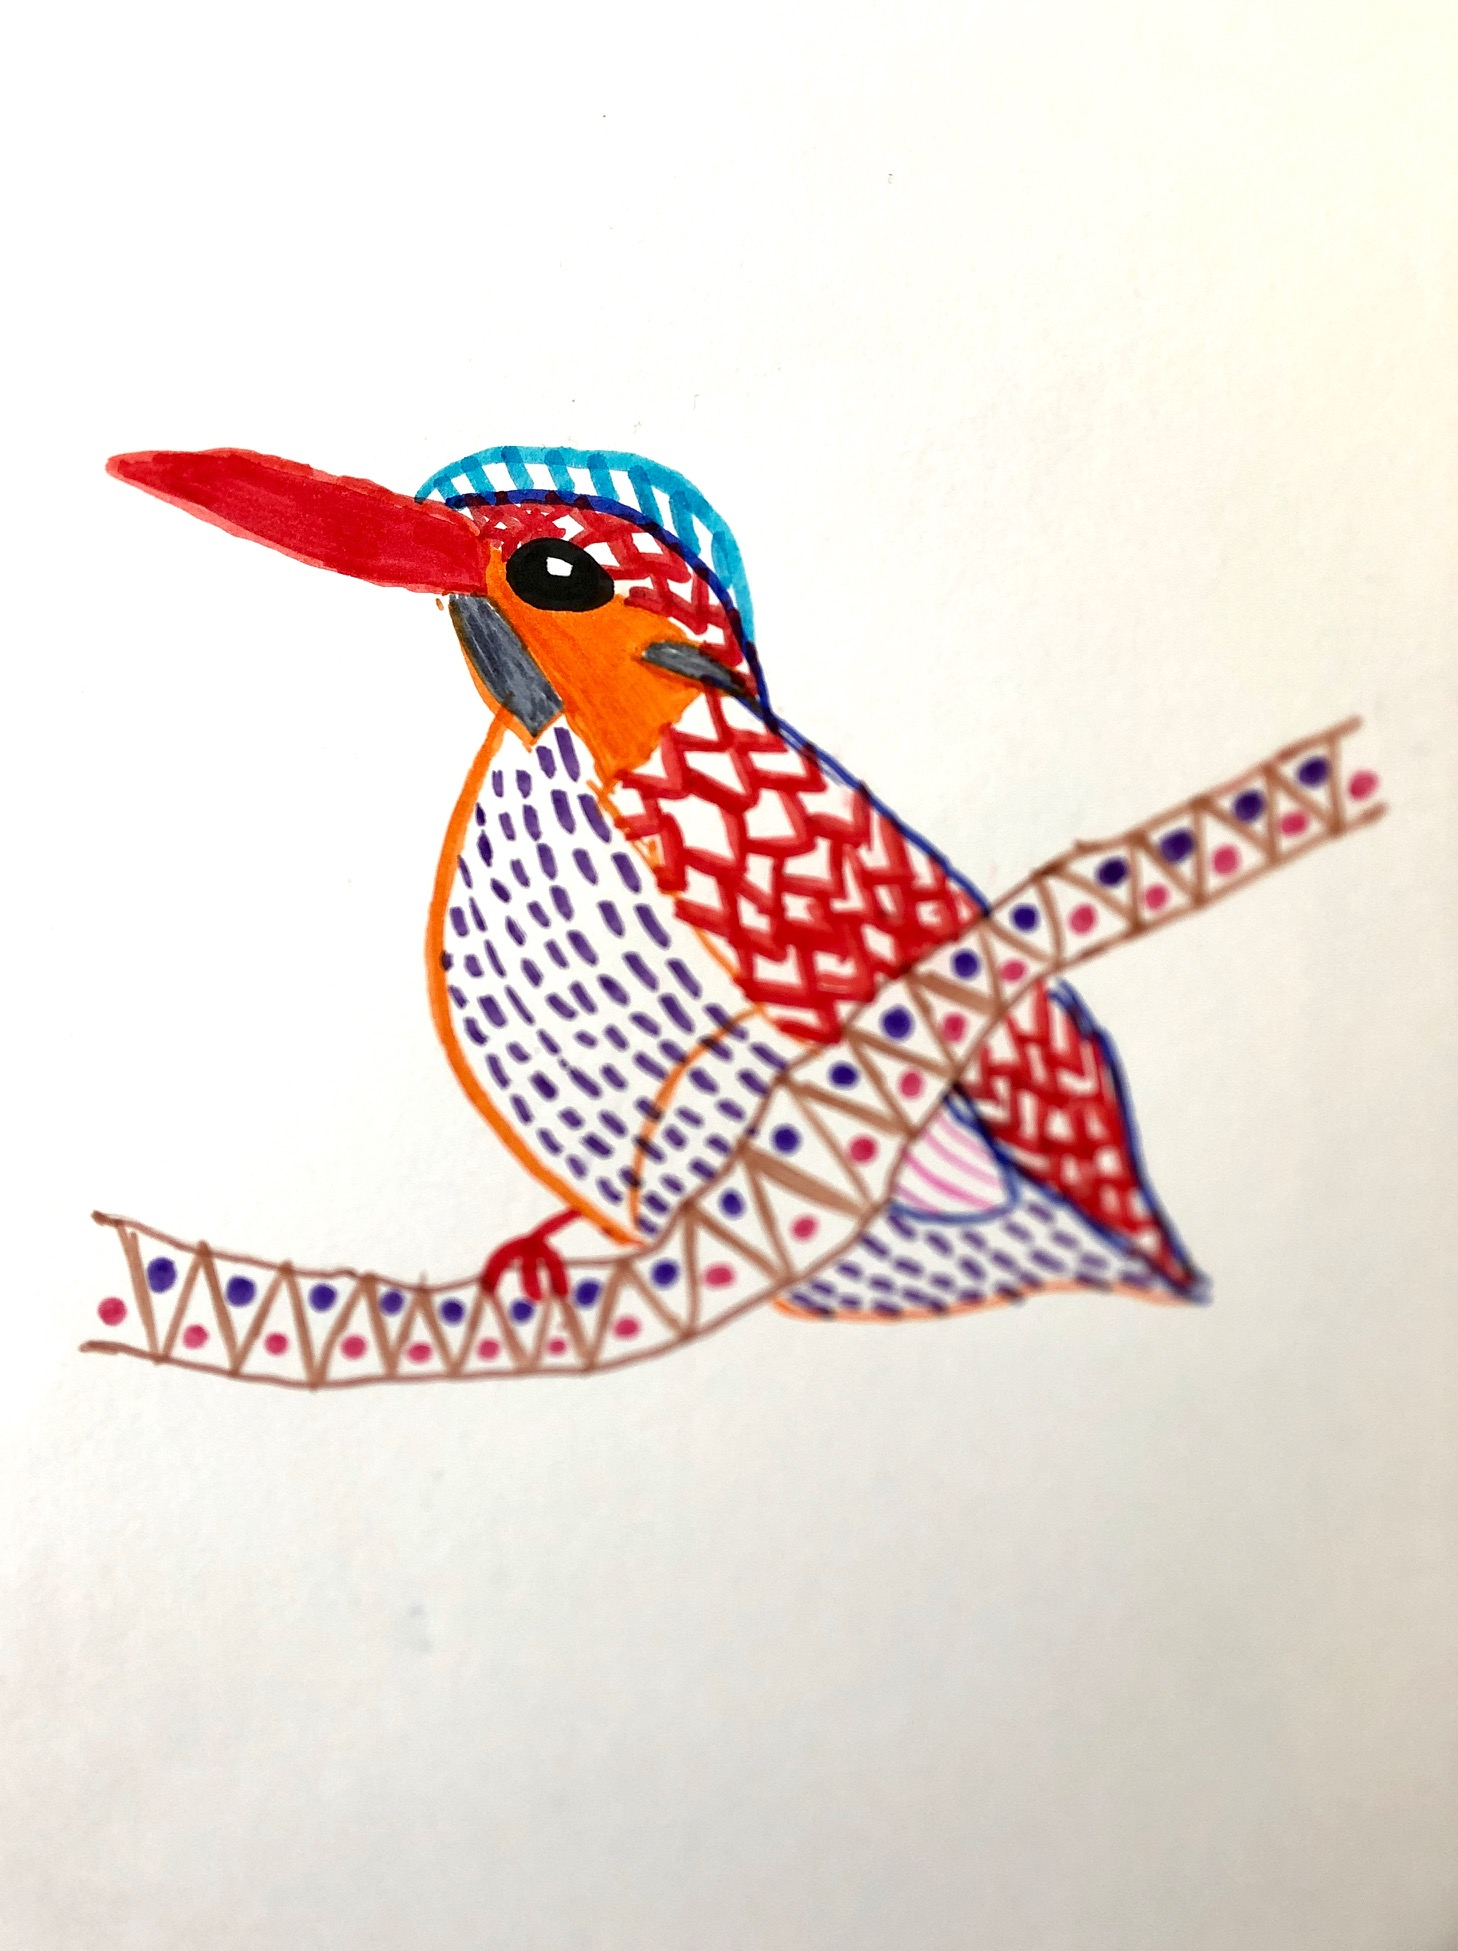 Bird Illustration by Sophie Age 9